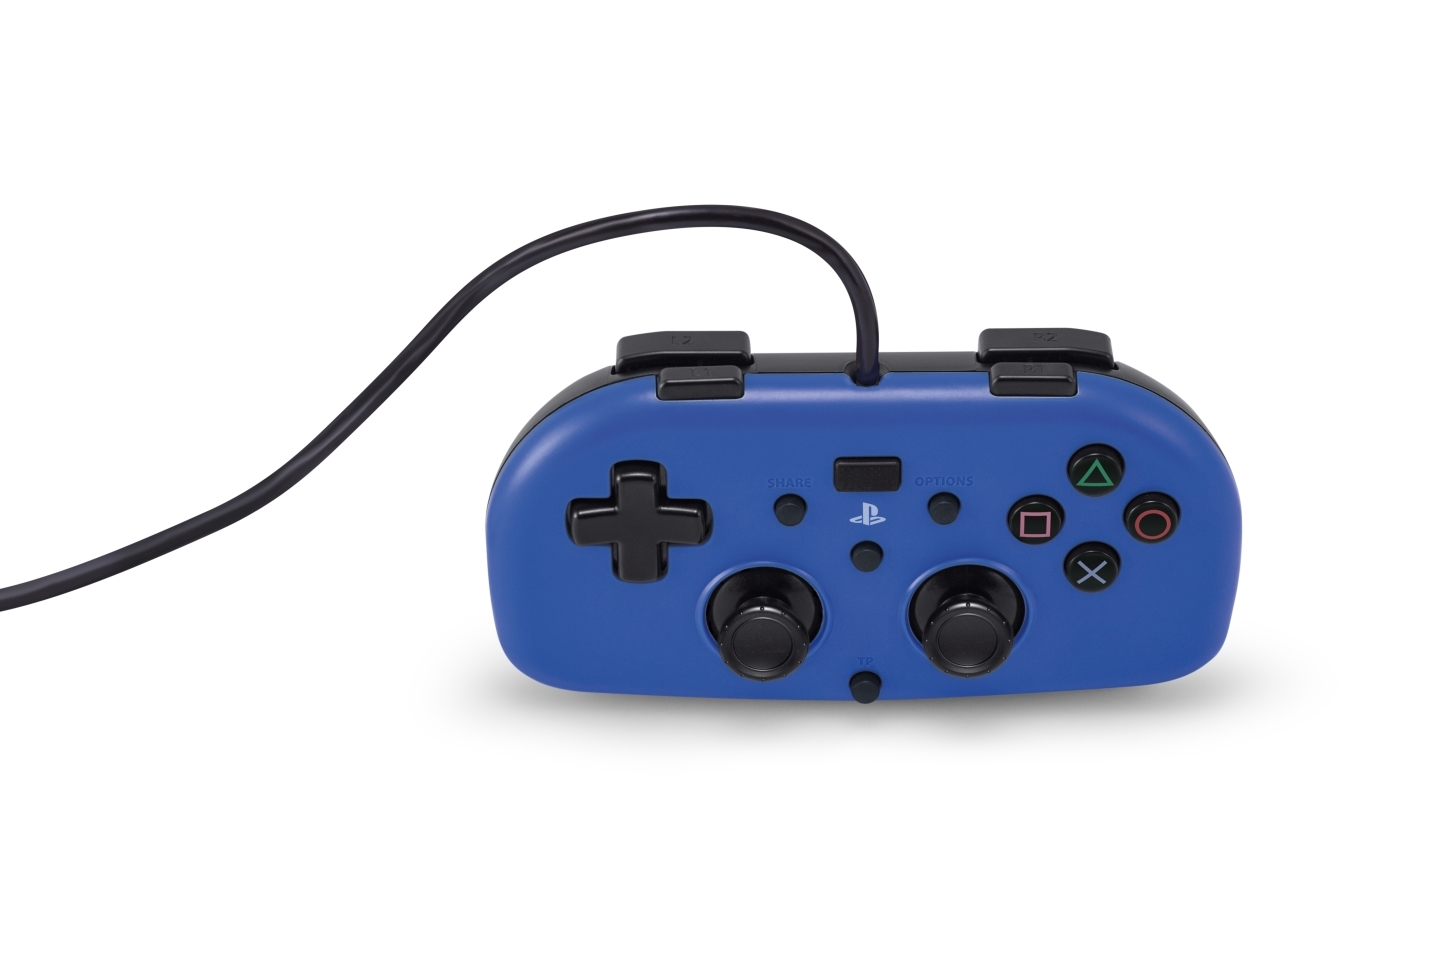 Sony reveals the PS4 Mini Wired Gamepad for kids - VG247